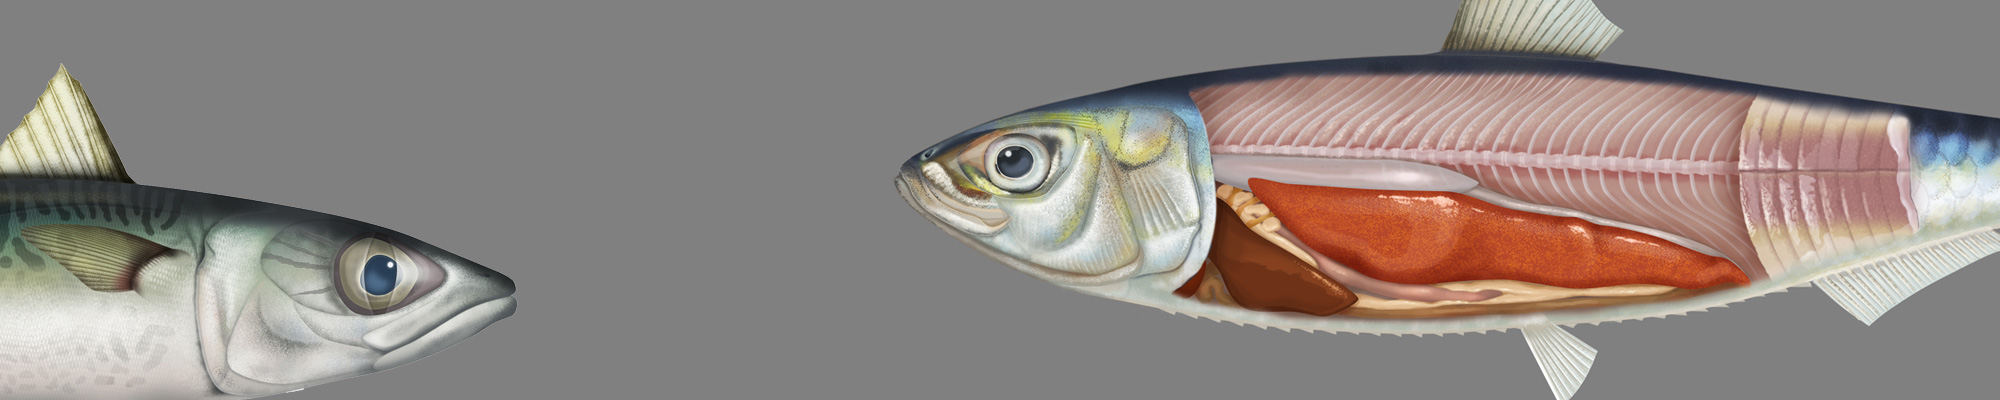 2D digital illustration of a sardine and a mackerel